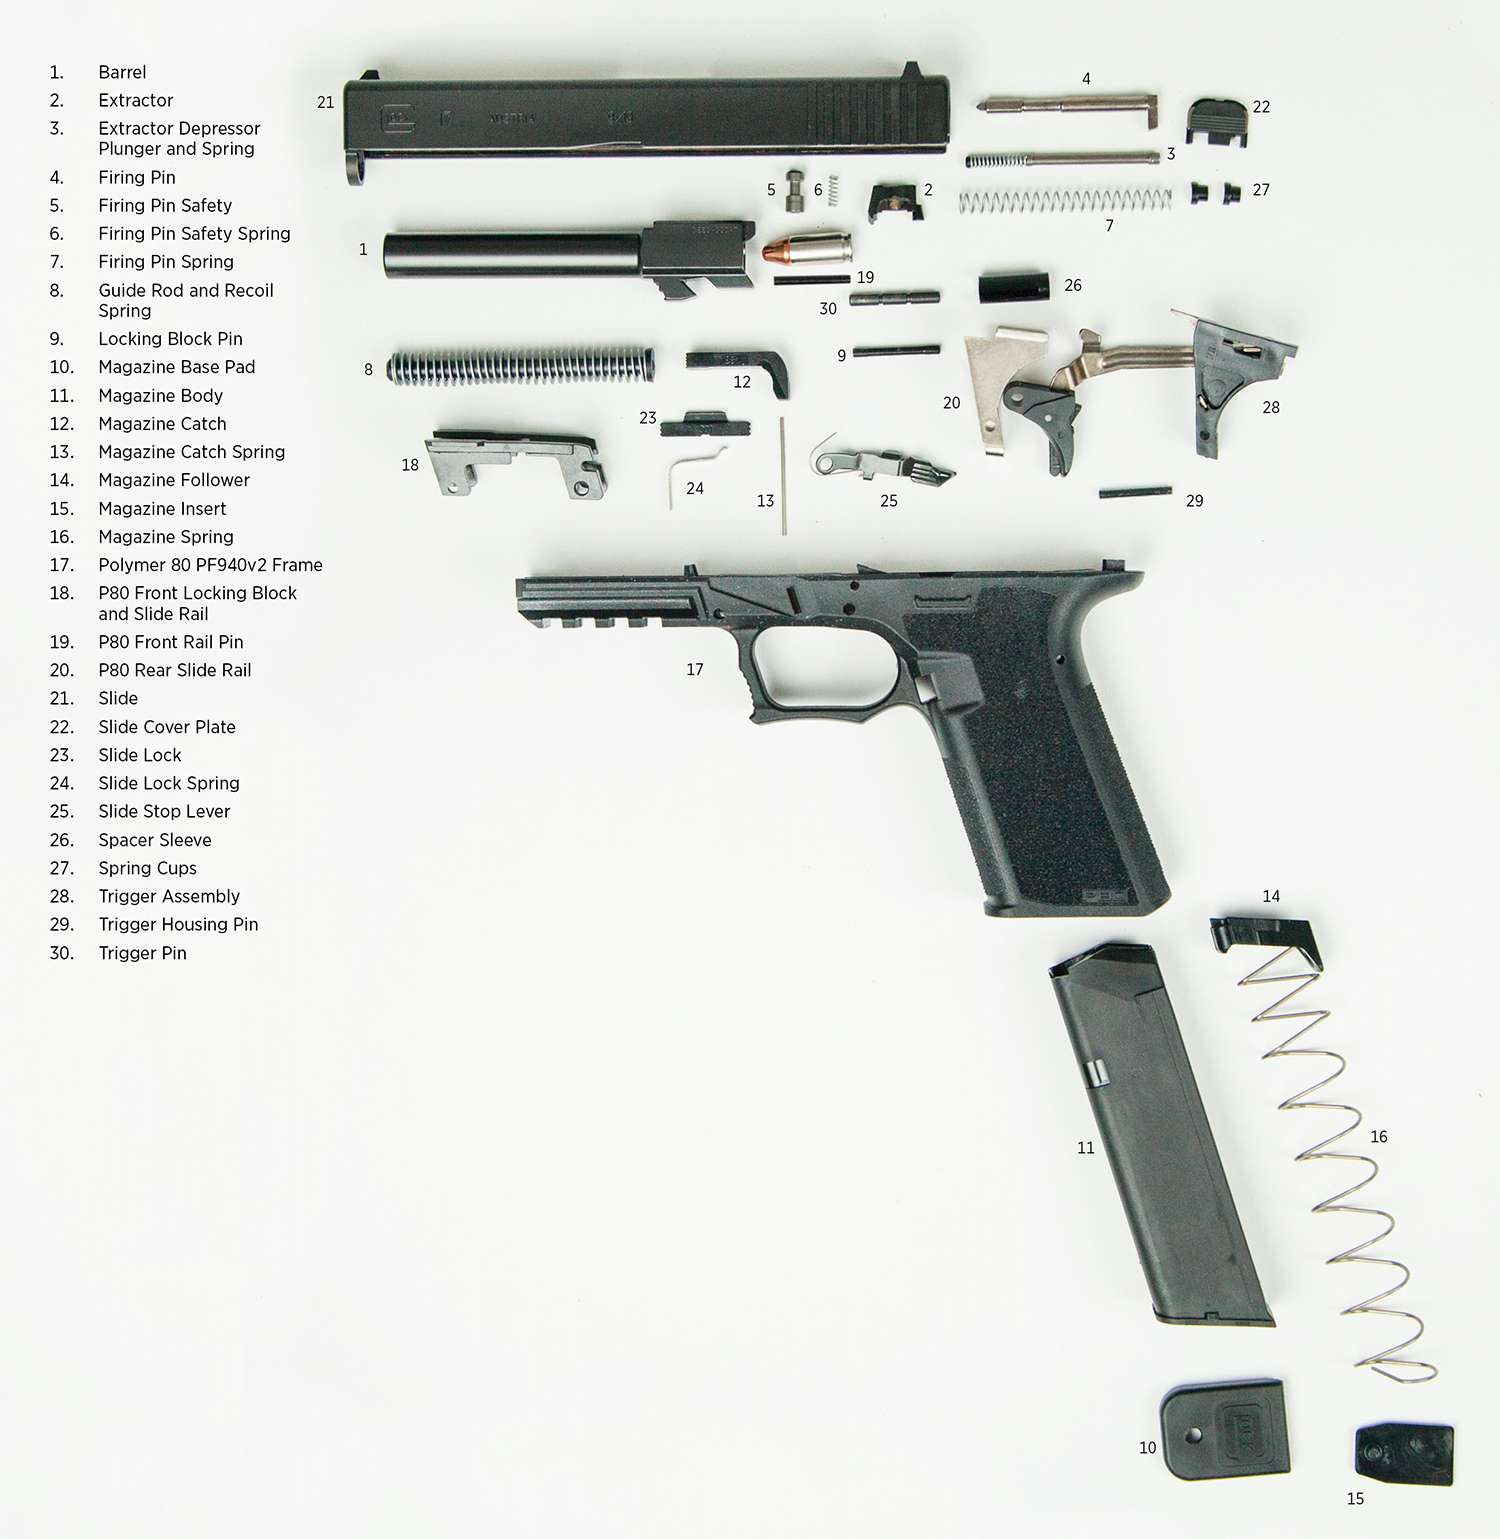 40 Glock Schematic Diagram - Wiring Diagrams Value on handgun concepts, handgun diagrams, handgun power, handgun components, handgun prototypes, handgun information, handgun parts, handgun dimensions, handgun accessories, handgun drawings, handgun illustrations, handgun blueprints, handgun safety,